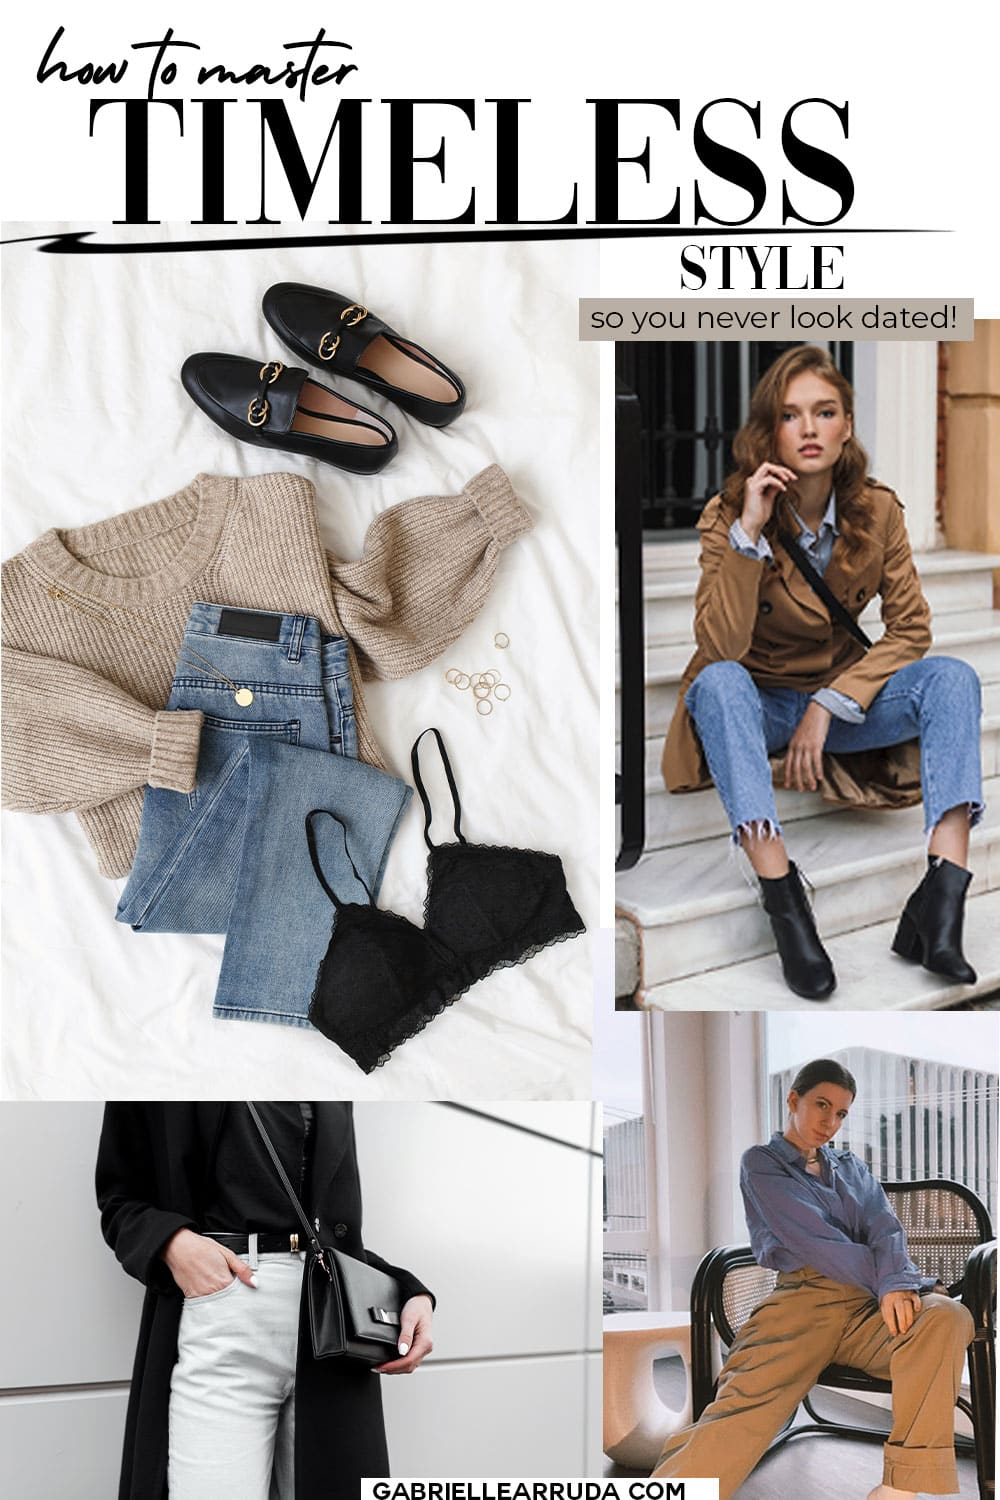 how to master timeless style and never look dated- classic outfit flatlay, woman wearing jeans and trench, elegant outfit on style blogger gabrielle arruda with wide leg trouser and blue shirt, cropped image of woman wearing black coat, black crossbody, and white jeans. elegant fashion